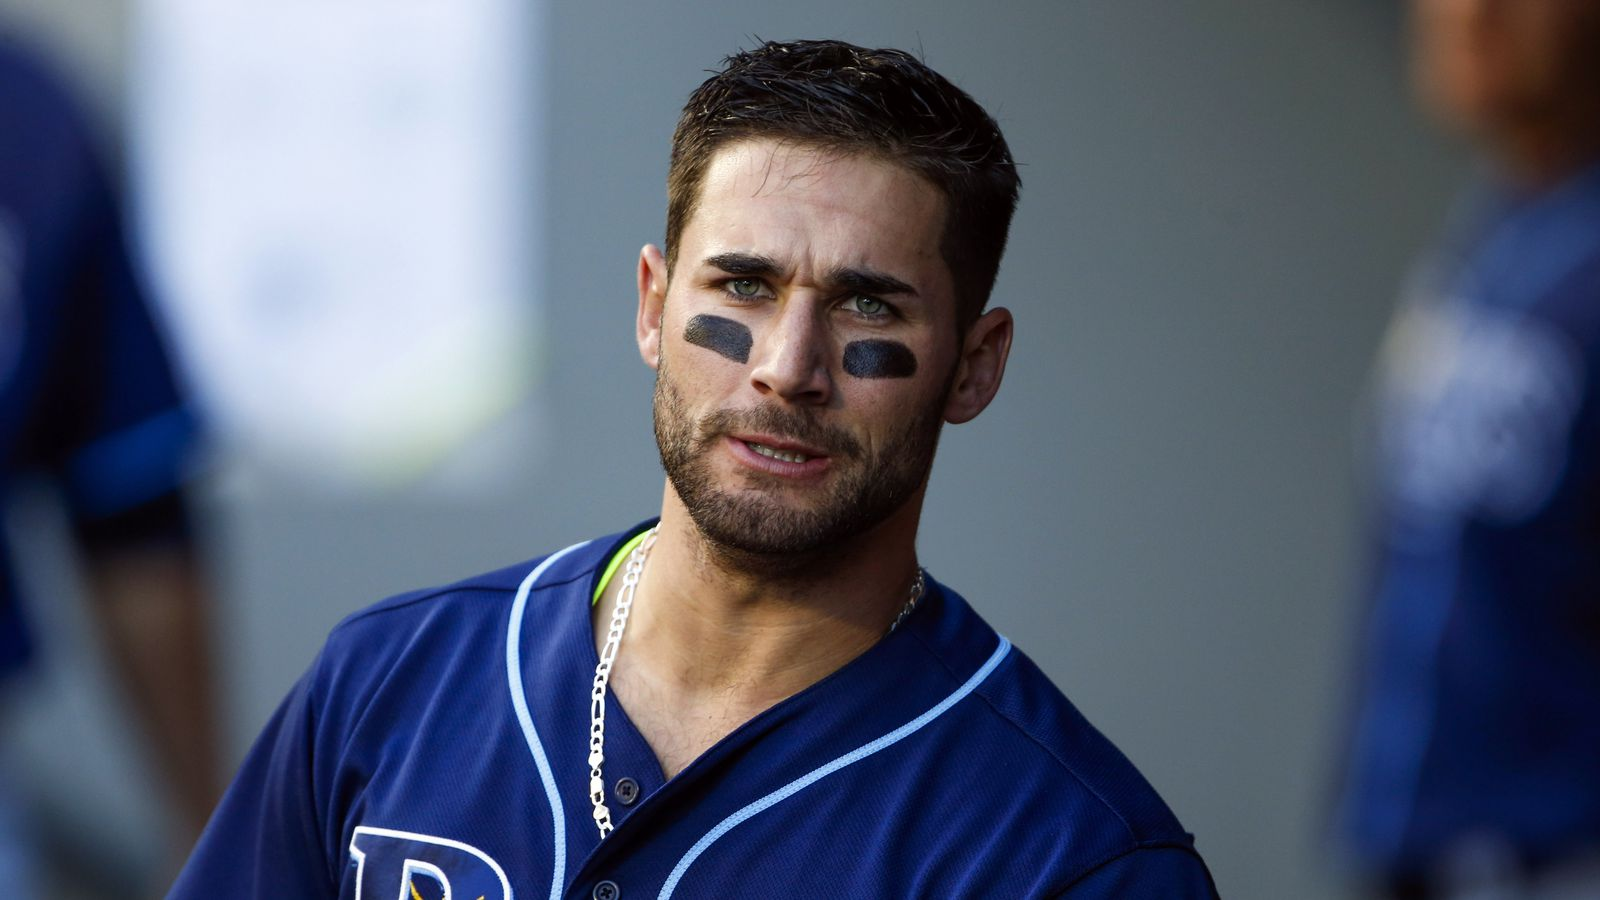 Kevin Kiermaier reflects on his draft day experience - DRaysBay